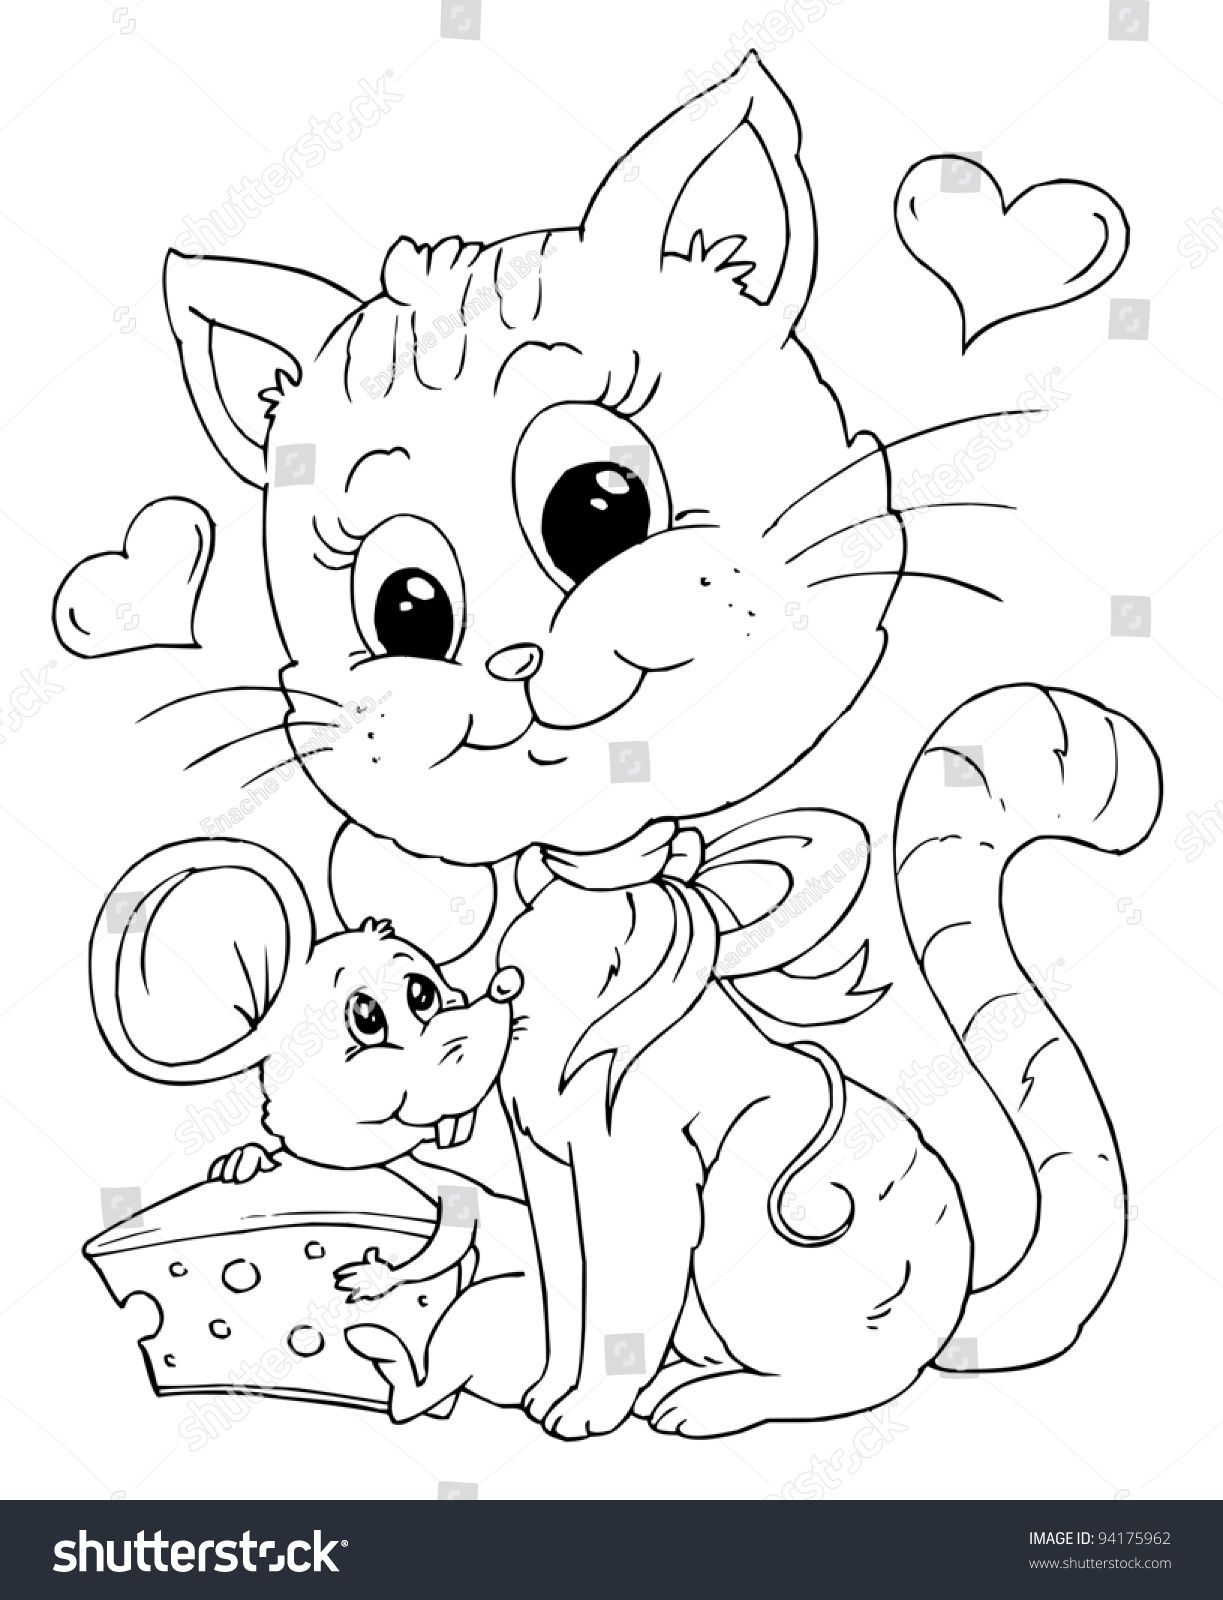 1223x1600 Incredible Friends Mouse Cat Illustration Coloring Page Stock